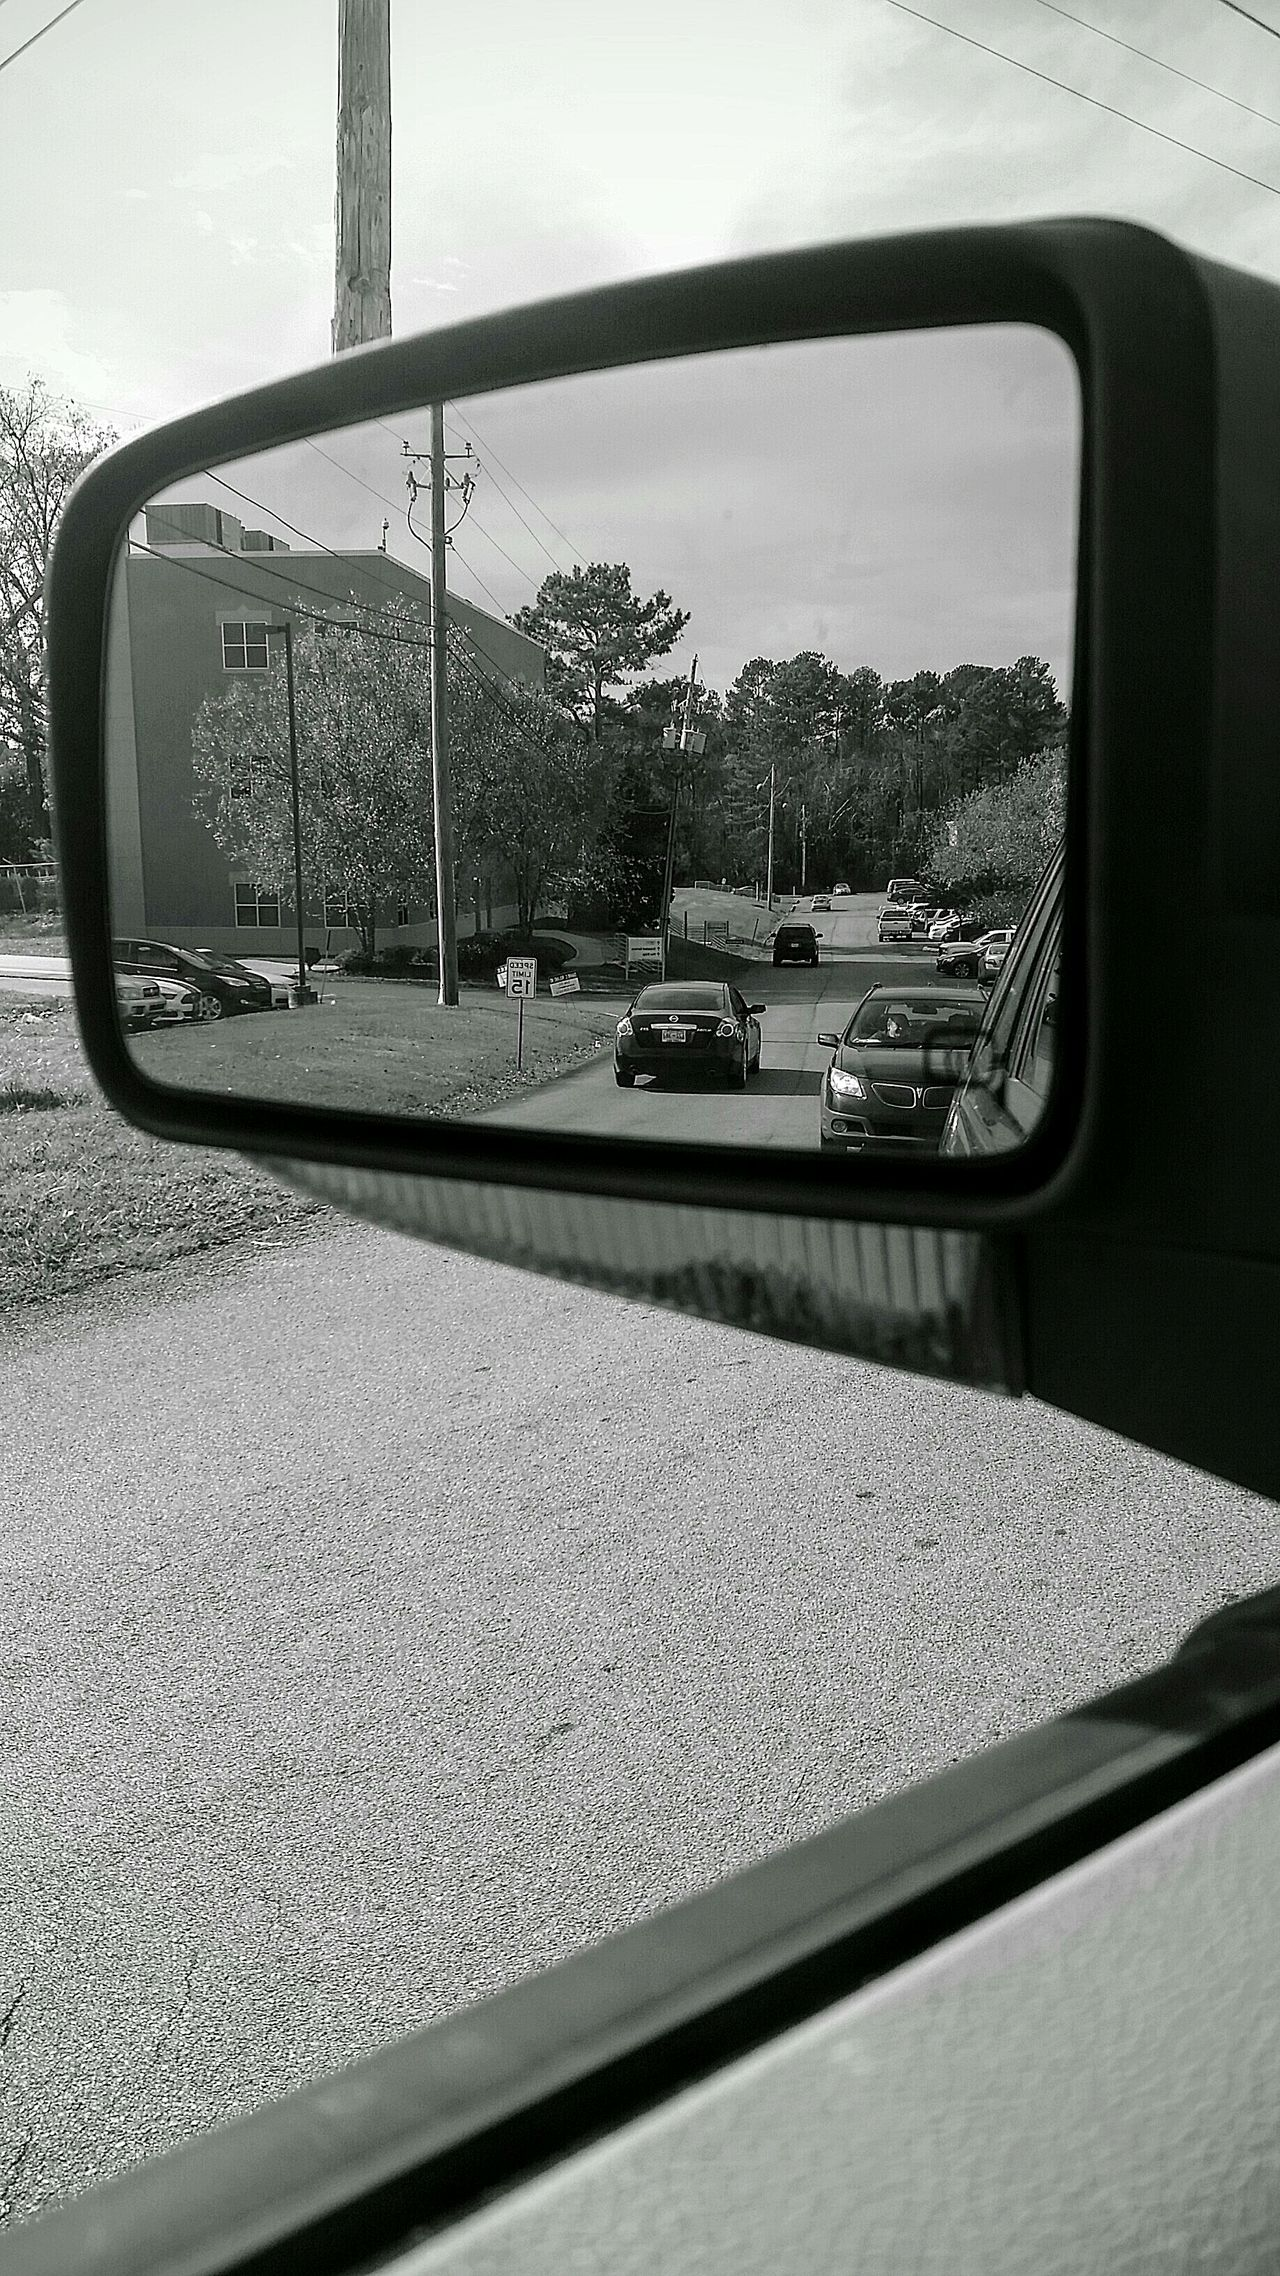 Black & White EyeEm Best Shots - Black + White EyeEm Best Shots Streetphoto_bw Streetphotography Mirror Picture View From My Rearview Mirror The Street Photographer - 2015 EyeEm Awards AMPt_community NEM Black&white NEM Submissions The Traveler - 2015 EyeEm Awards The Photojournalist - 2015 EyeEm Awards The Explorer - 2014 EyeEm Awards Eye Em Best Shots -Black +White Femalephotographerofthemonth Lifephotography Capturing Movement Showcase: November Samsungphotography My Rearview Obsession Rearviewmirrorshot In My Rearview Mirror Ladyphotographerofthemonth